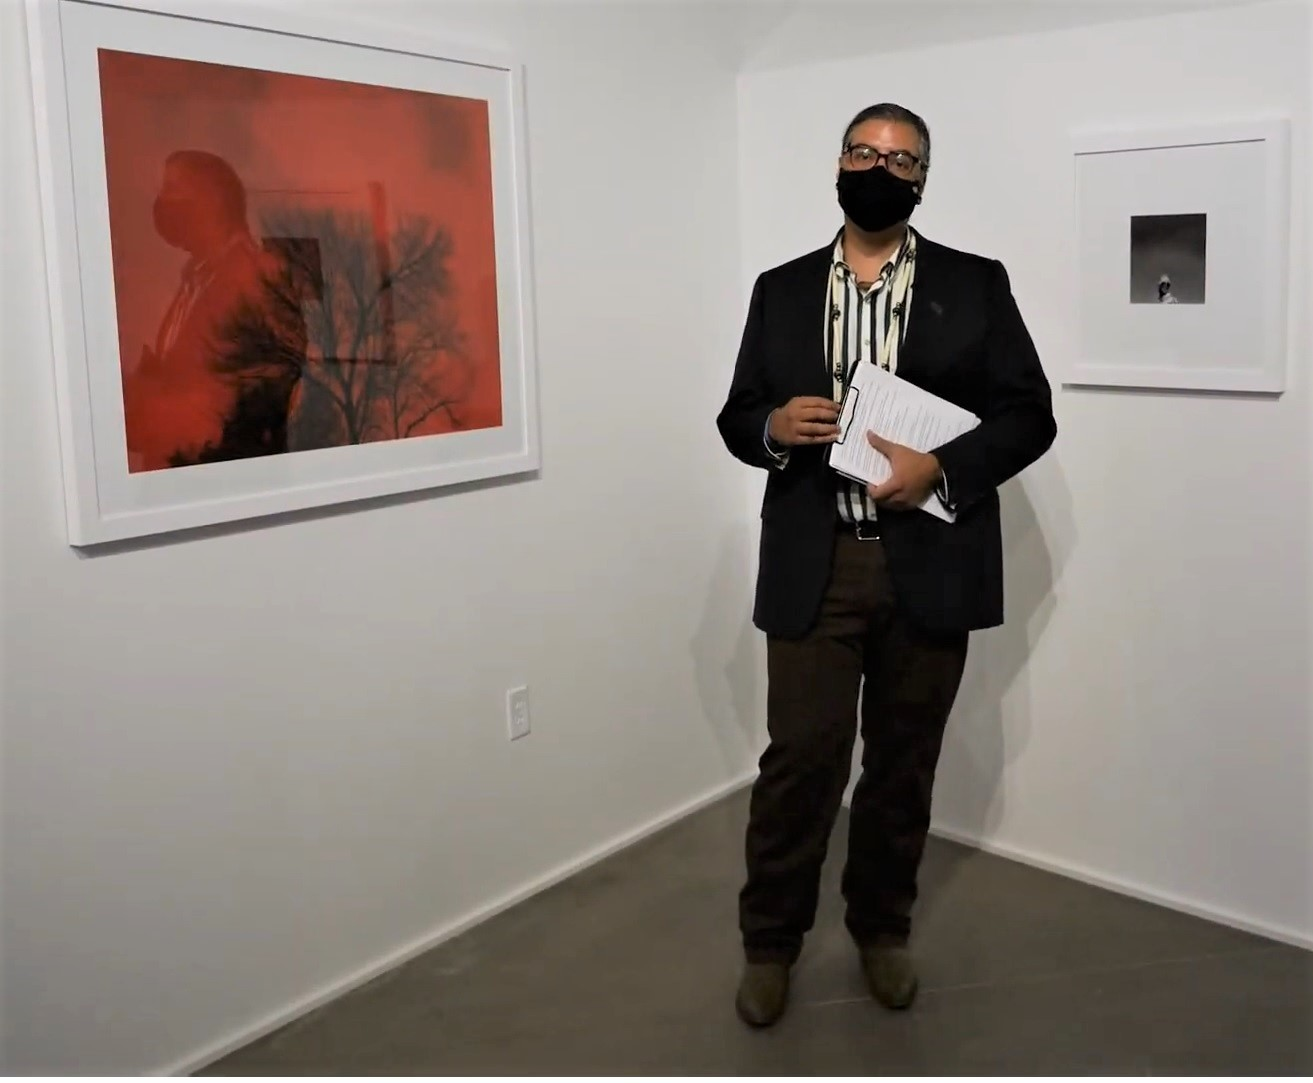 A masked figure holding a clipboard speaks in front of photographs hanging in an art gallery